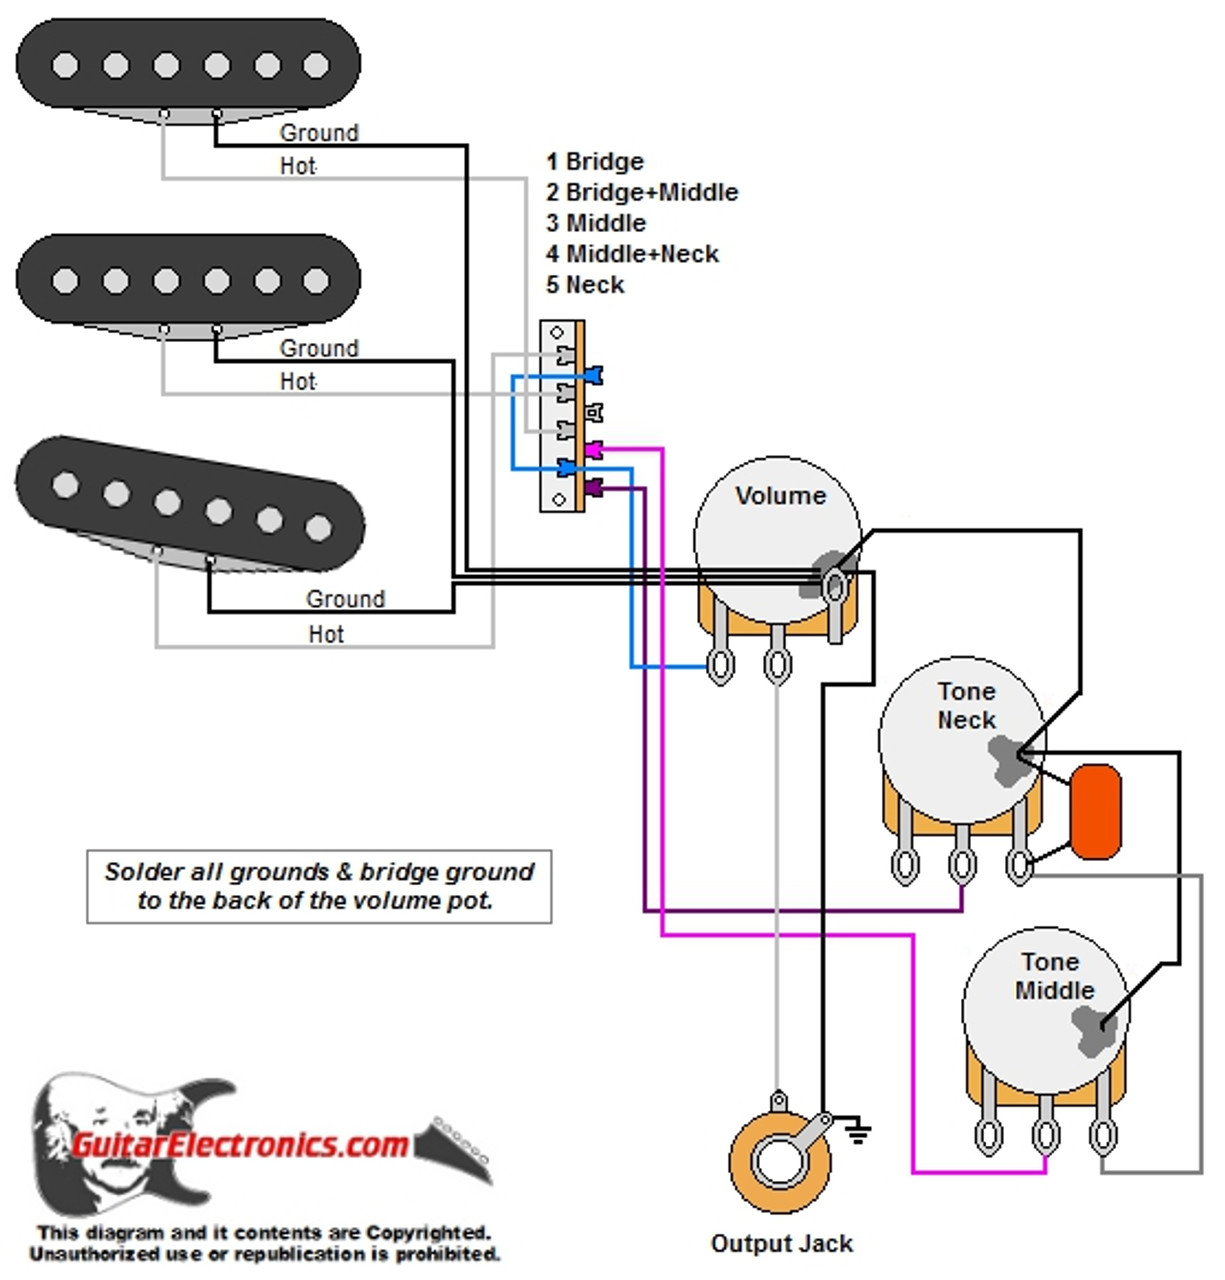 strat style guitar wiring diagram Guitar Potentiometer Wiring